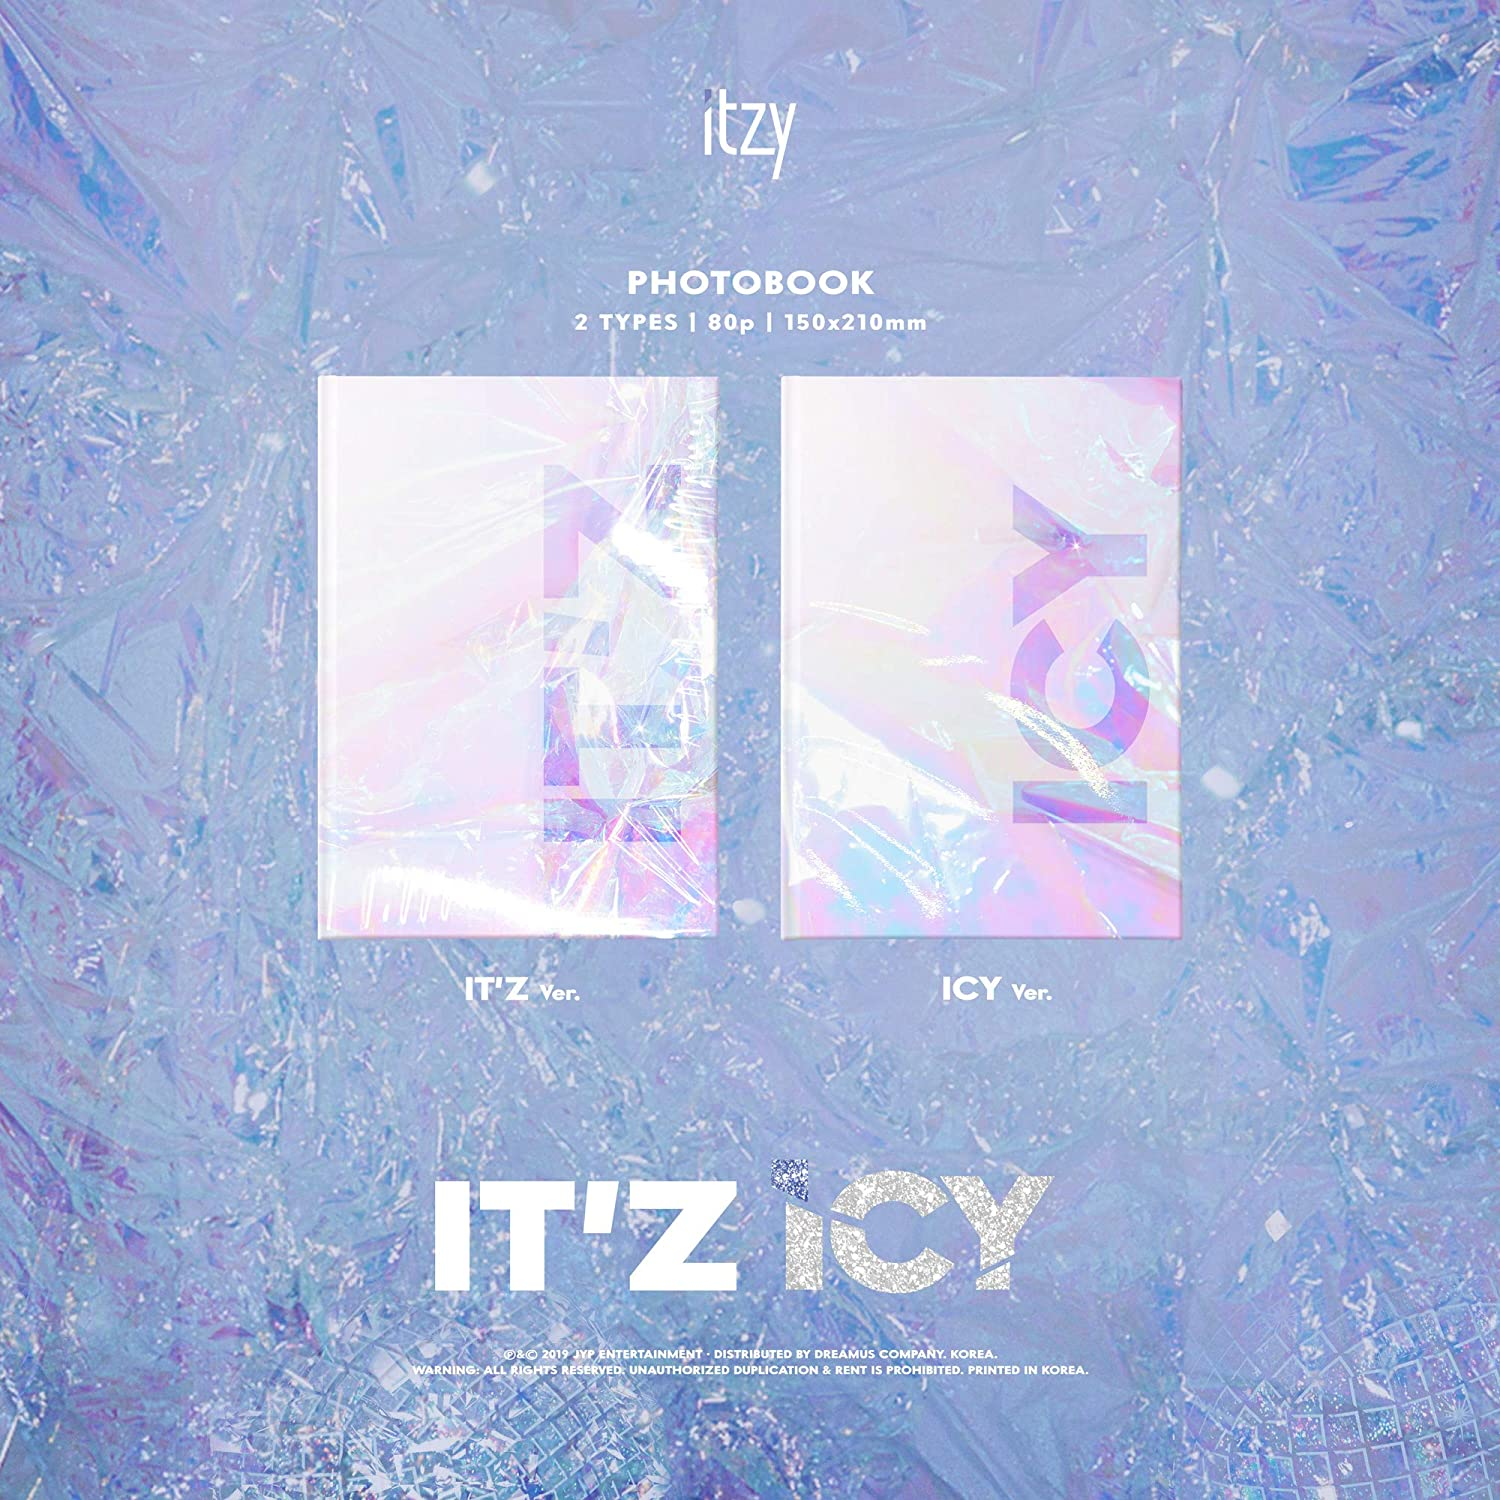 Photocard Set Pack with Pre Order Benefit Tracking Provided ICY ver. Pre Order - ITZY Album ITz ICY Extra Decorative Sticker Set